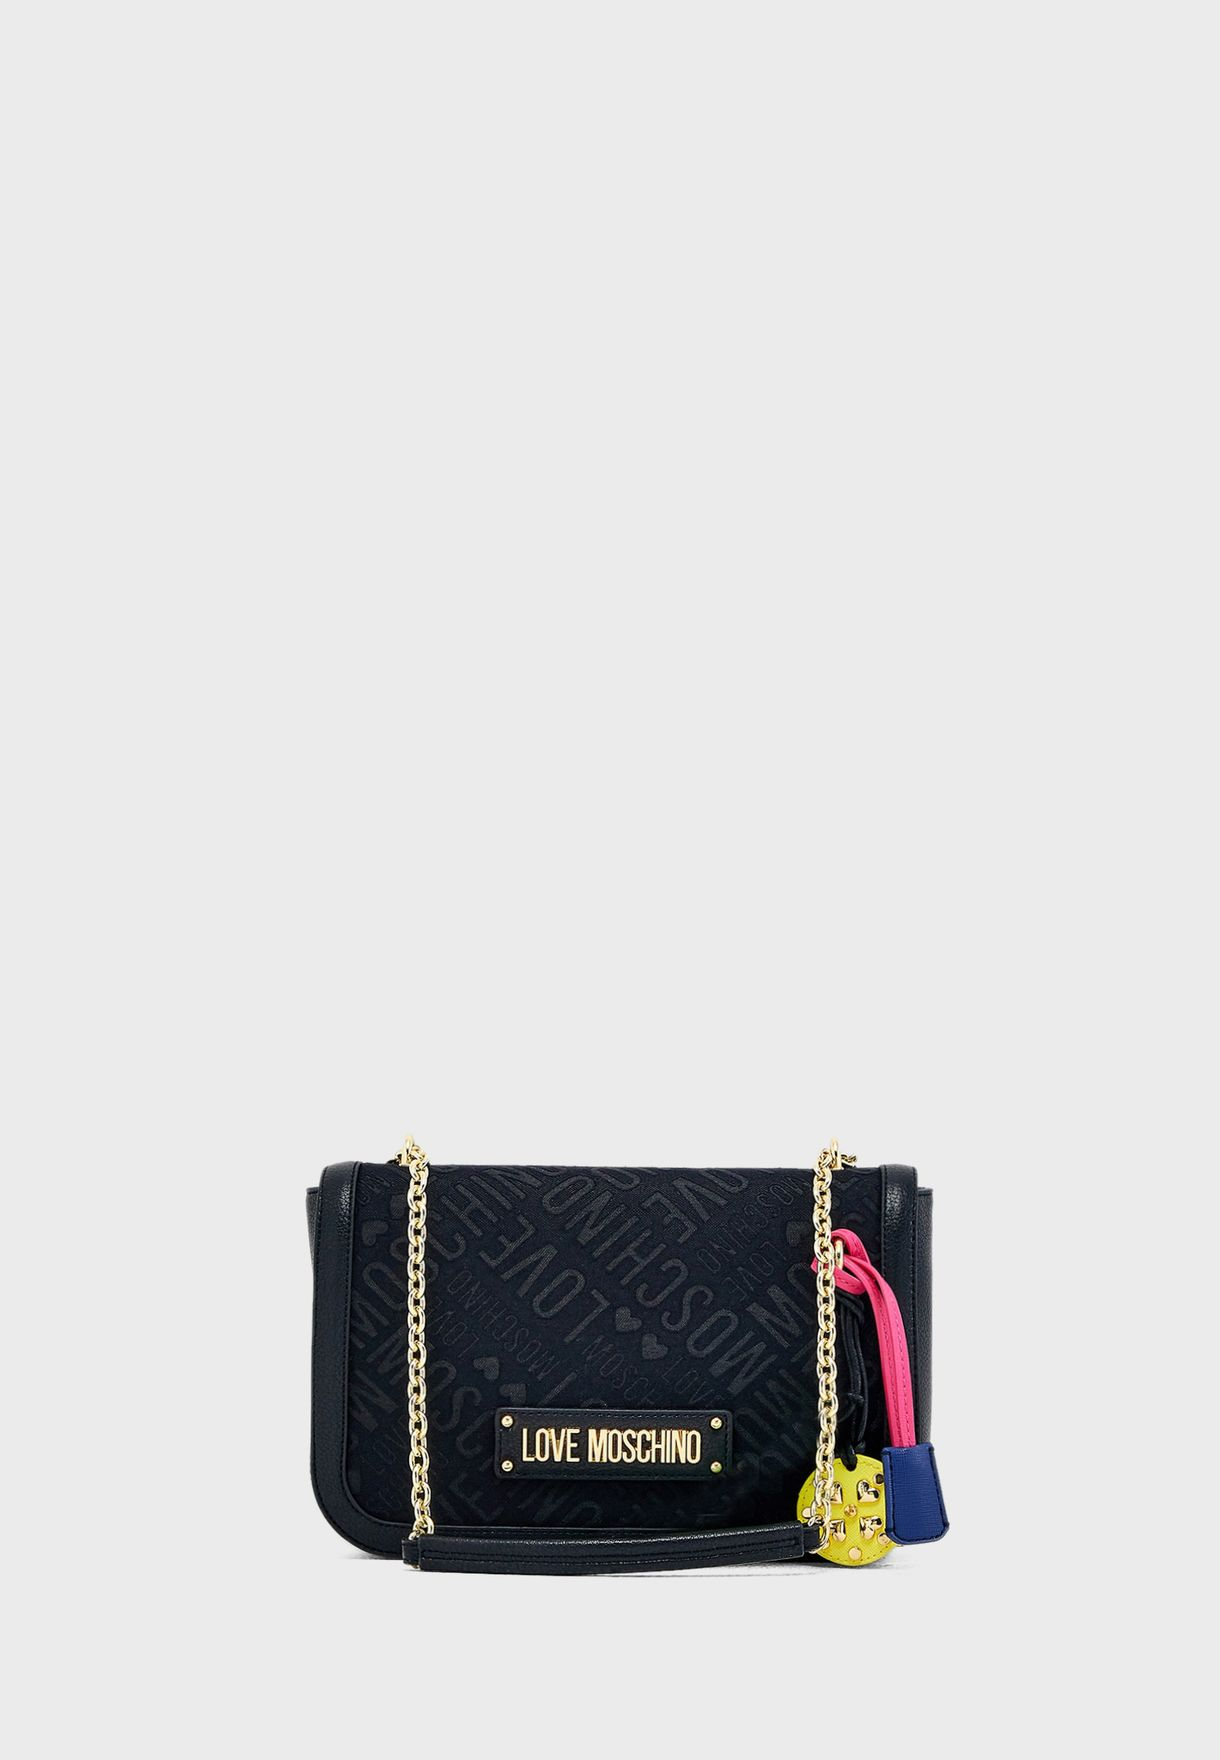 fc200feba91 Shop Love Moschino black Printed Shoulder Bag JC4210PP07KB100A for ...